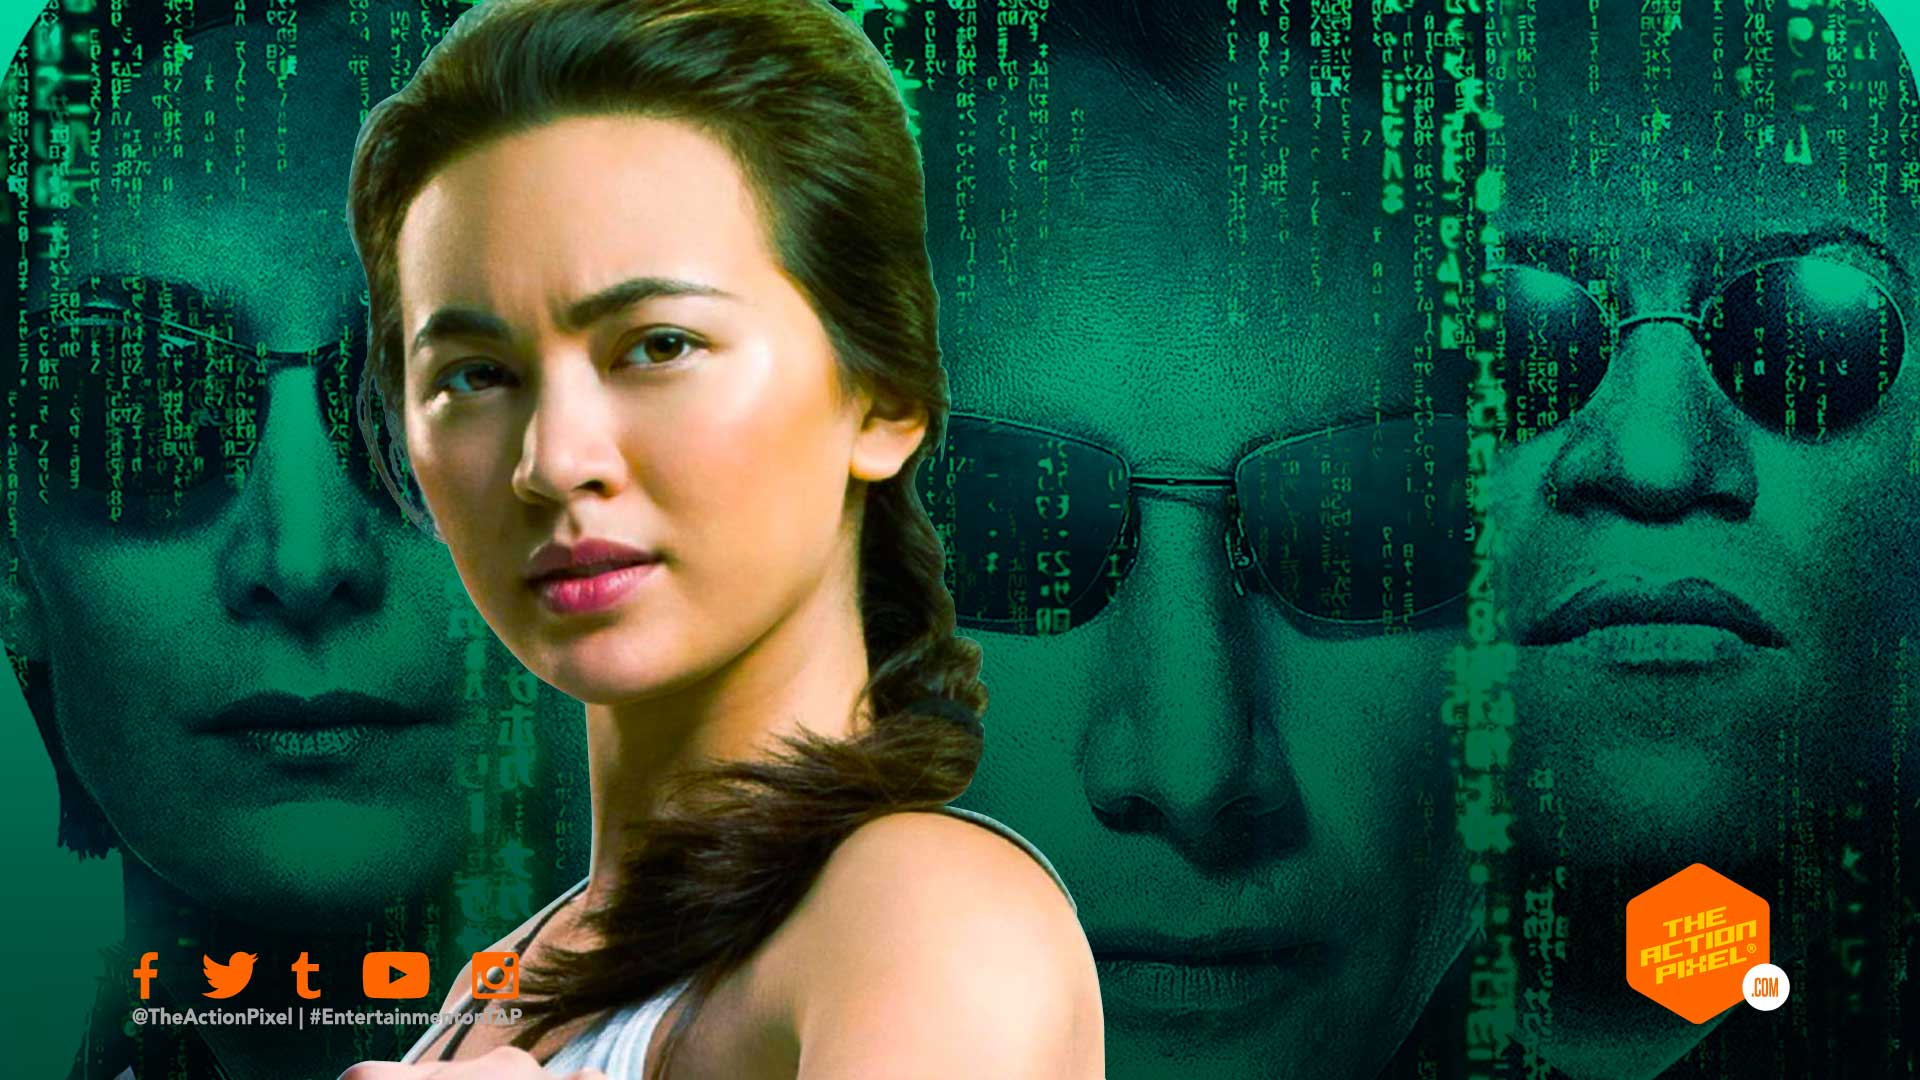 matrix 4, jessica henwick, matrix, matrix 4 casting , iron fist, game of thrones, featured, entertainment on tap